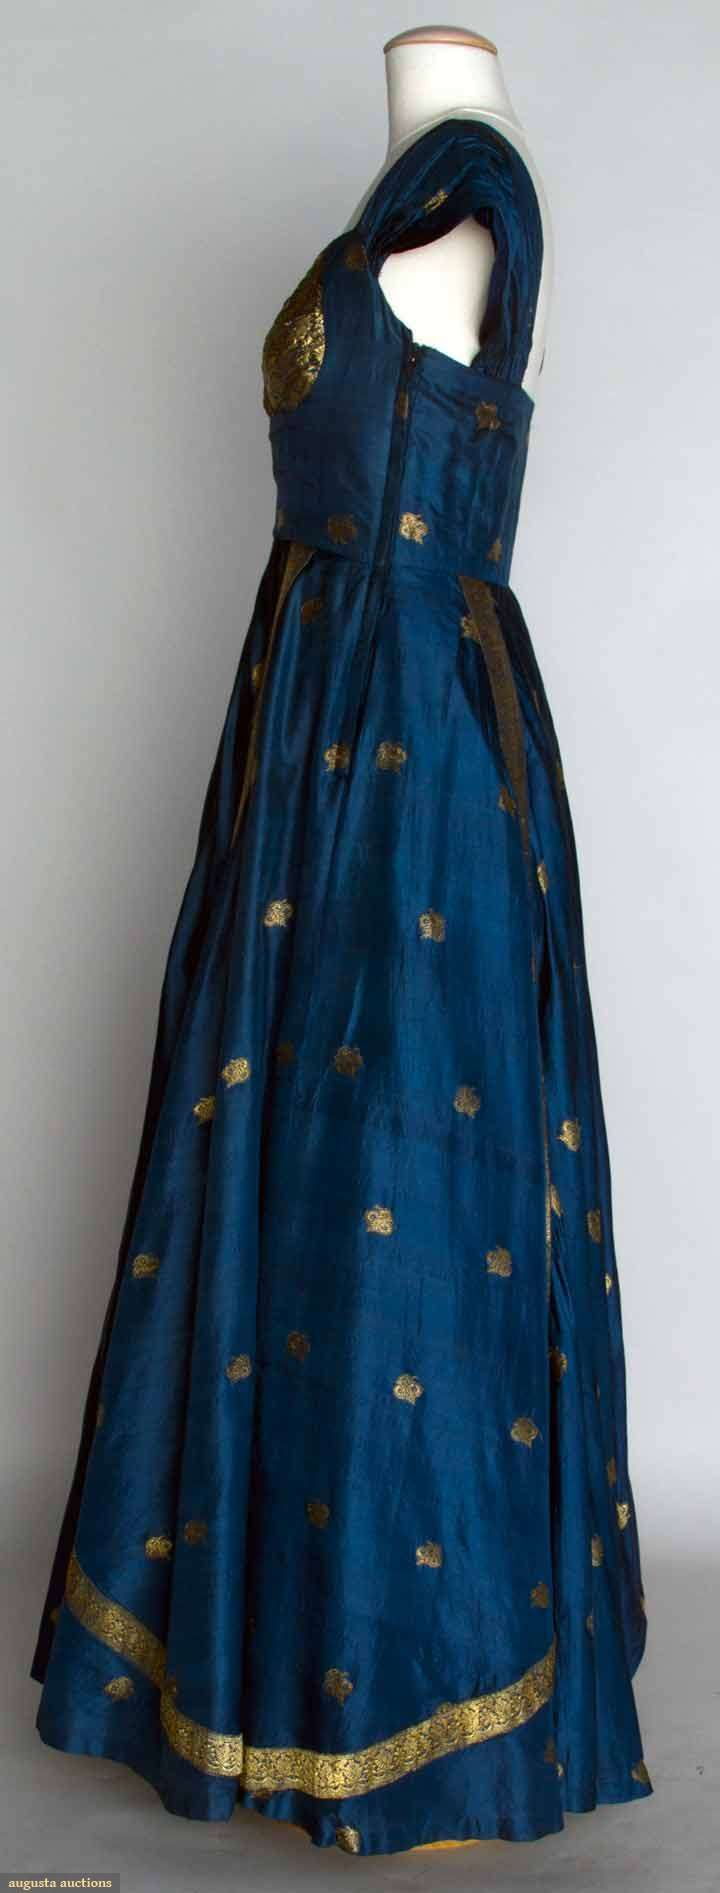 BLUE & GOLD EVENING DRESS, 1950 Blue silk taffeta w/ metallic gold brocade, fashioned from Indian sari,